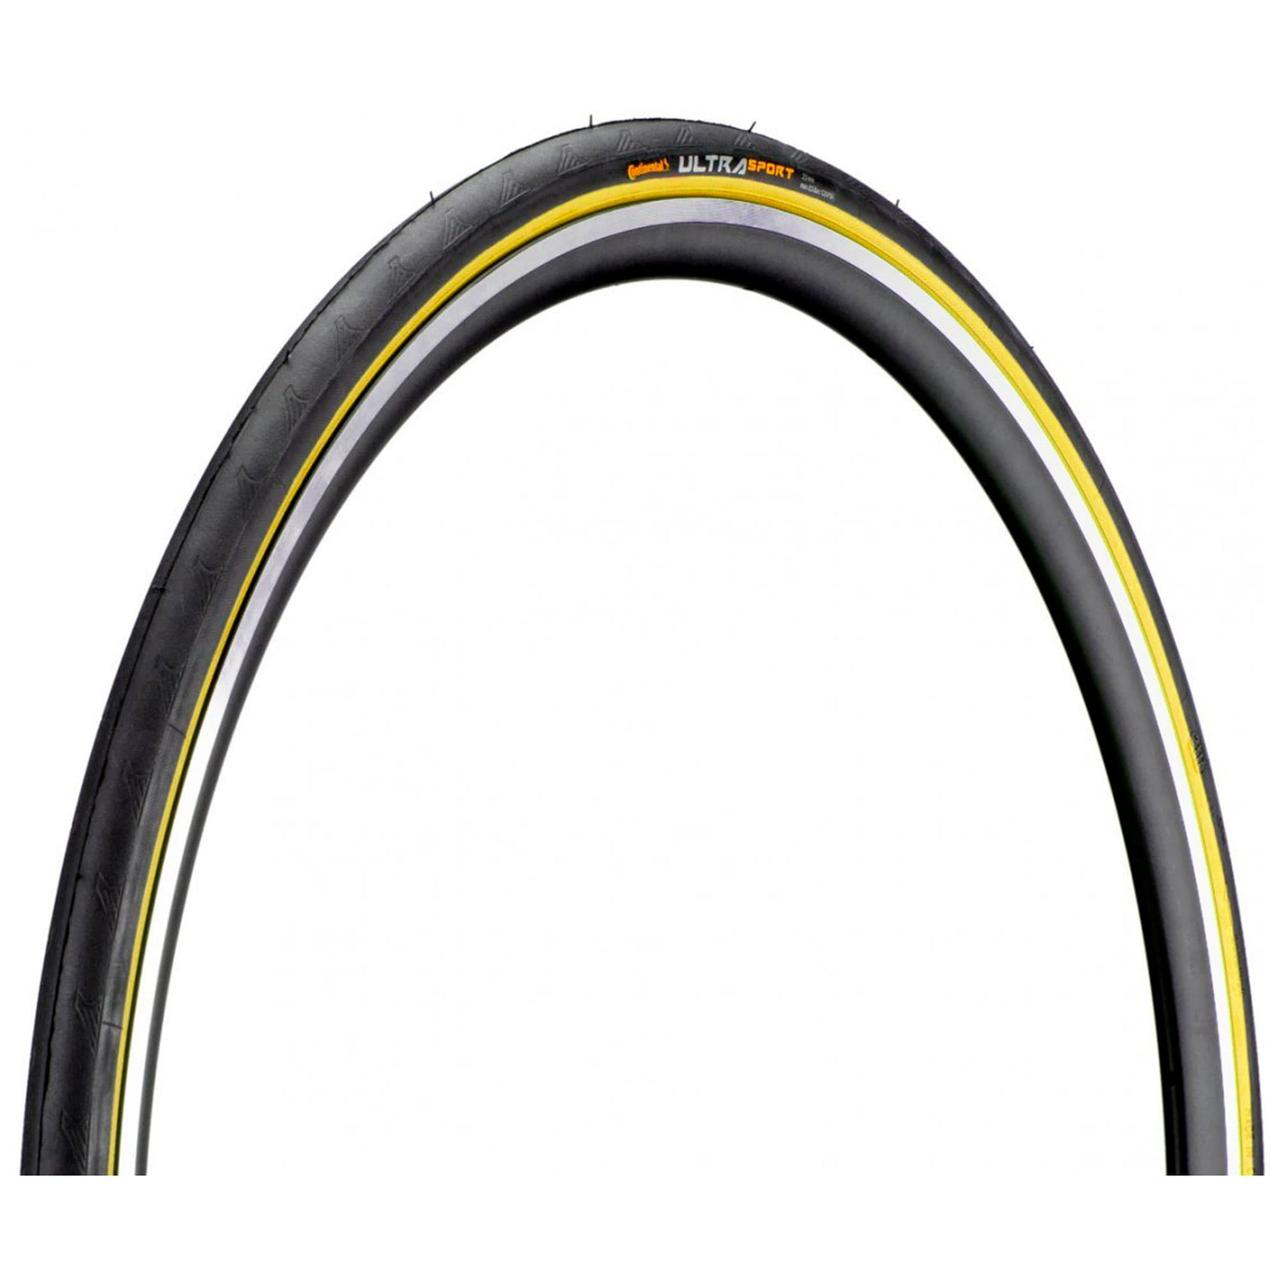 Покрышка Continental Ultra Sport II, 28"